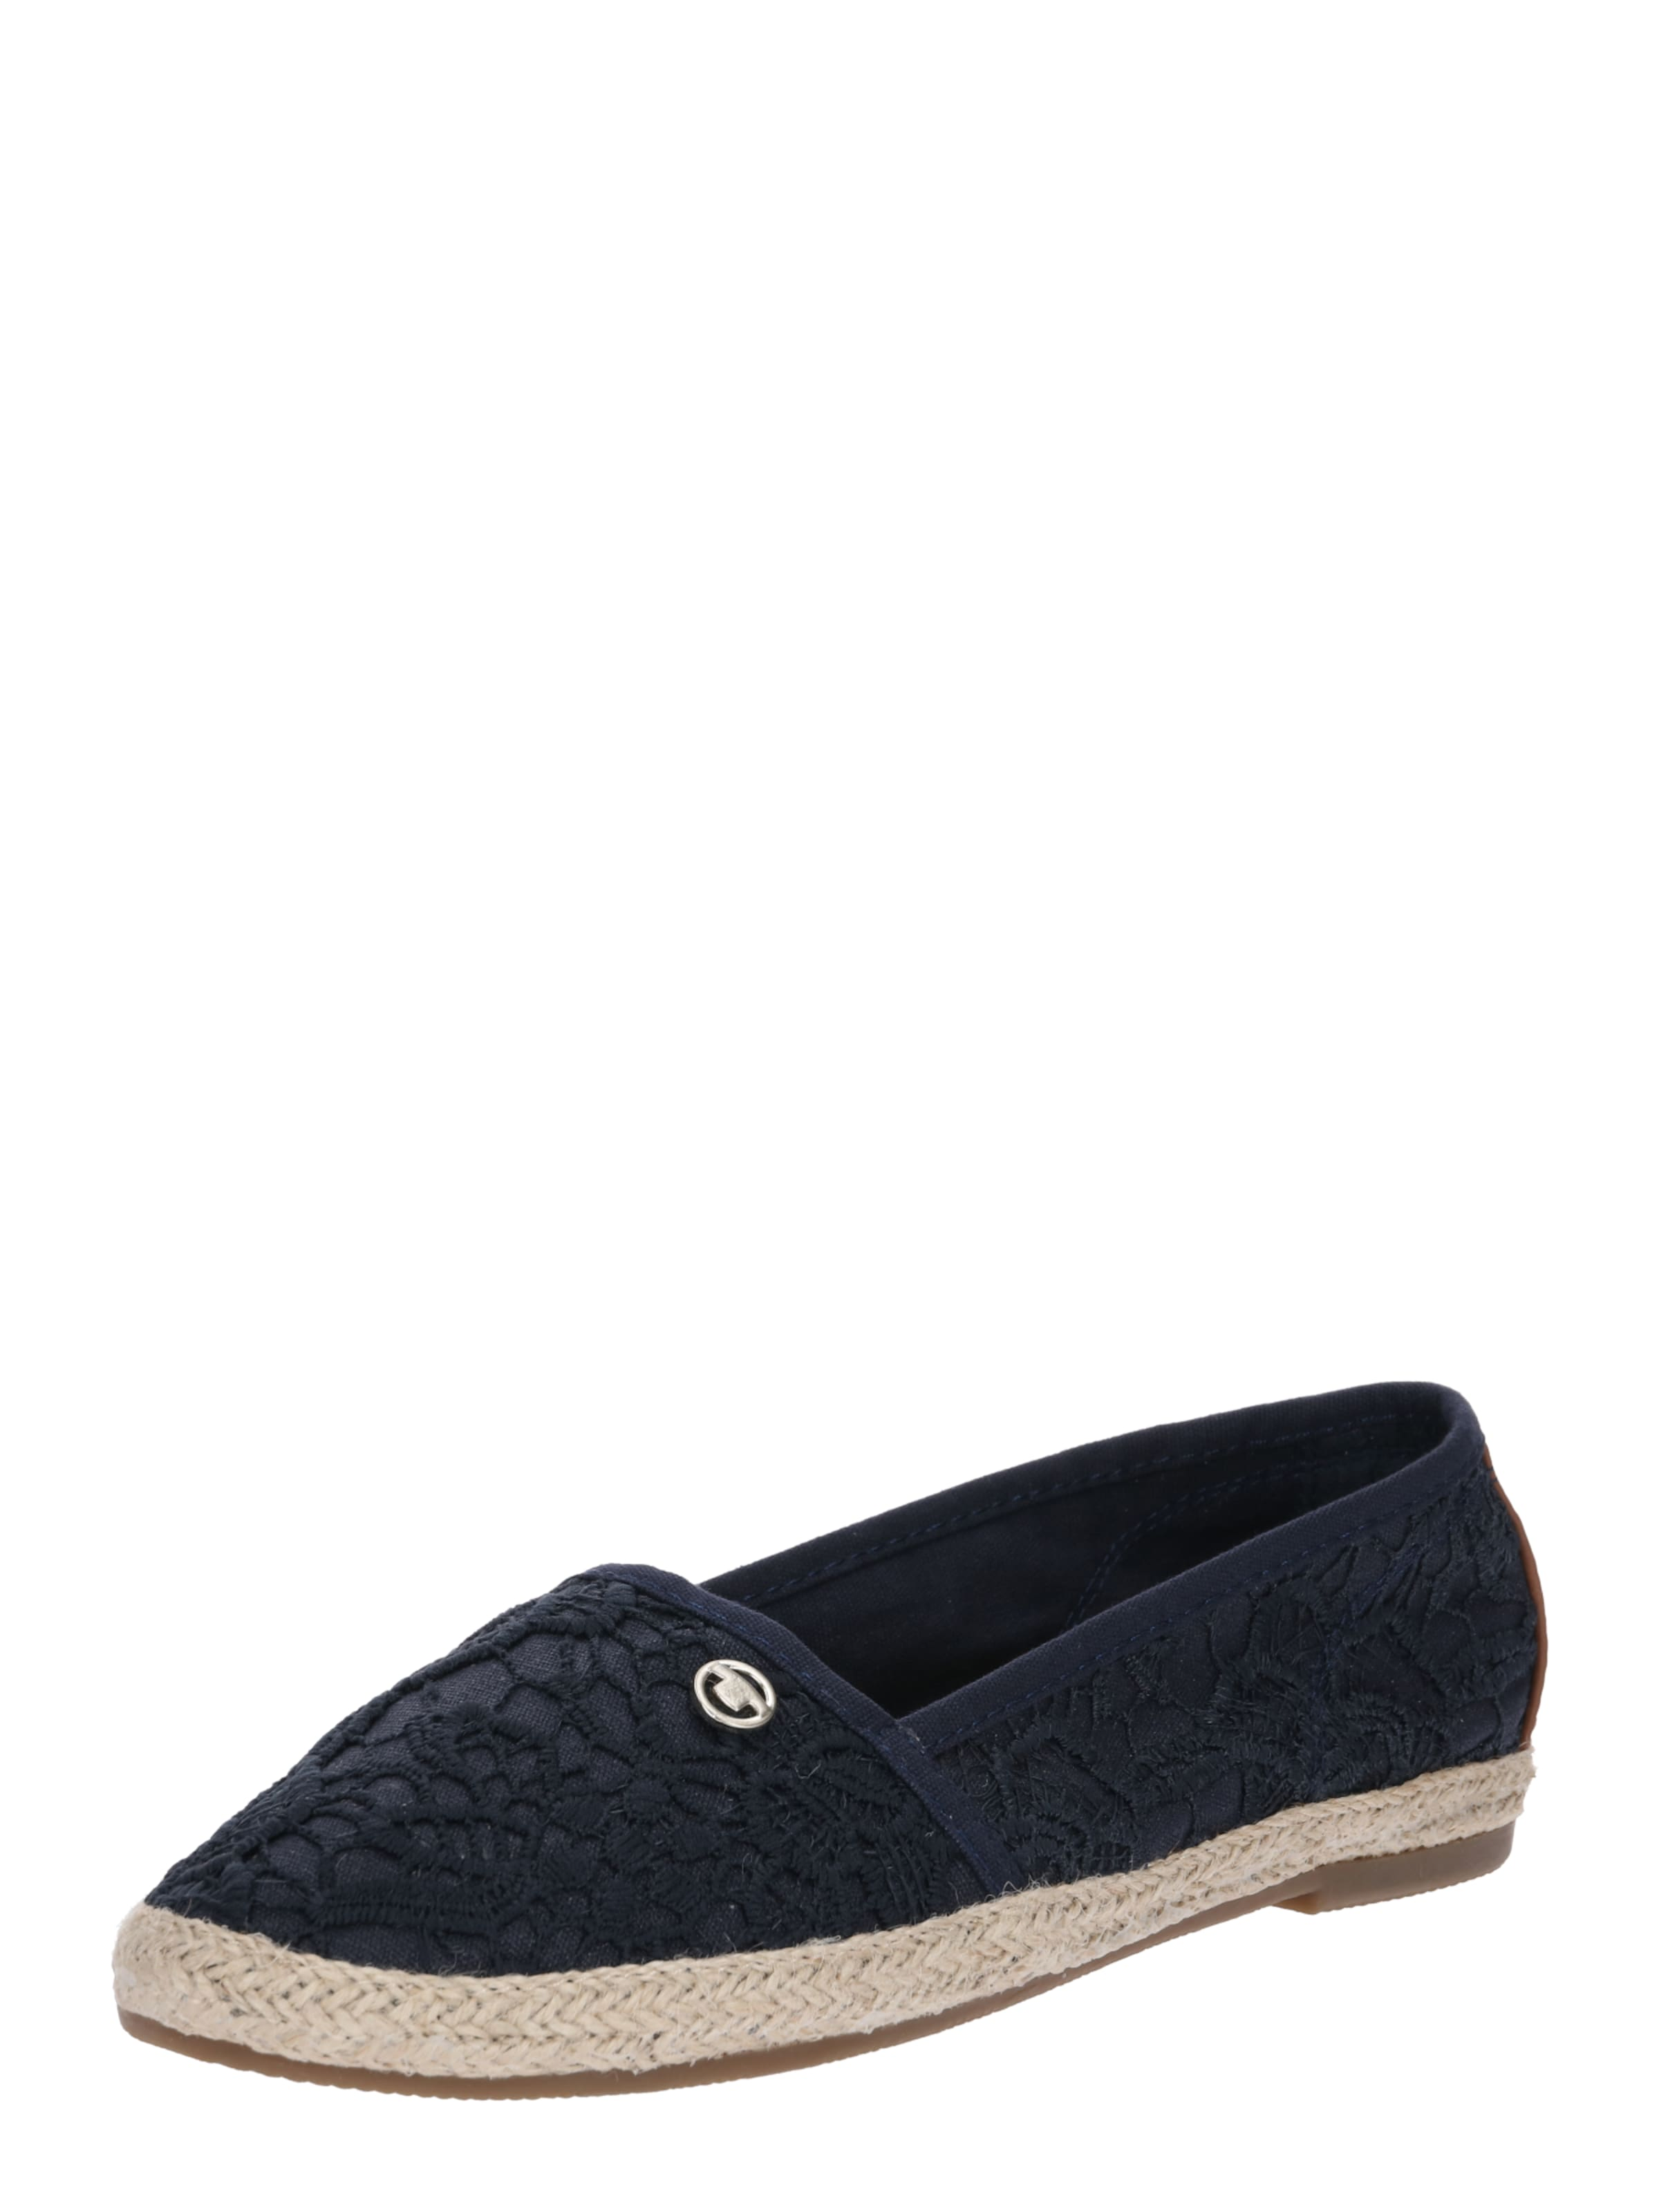 Navy In Espadrilles Espadrilles Tailor Tom Tom Navy Tailor In HI9E2YeWD